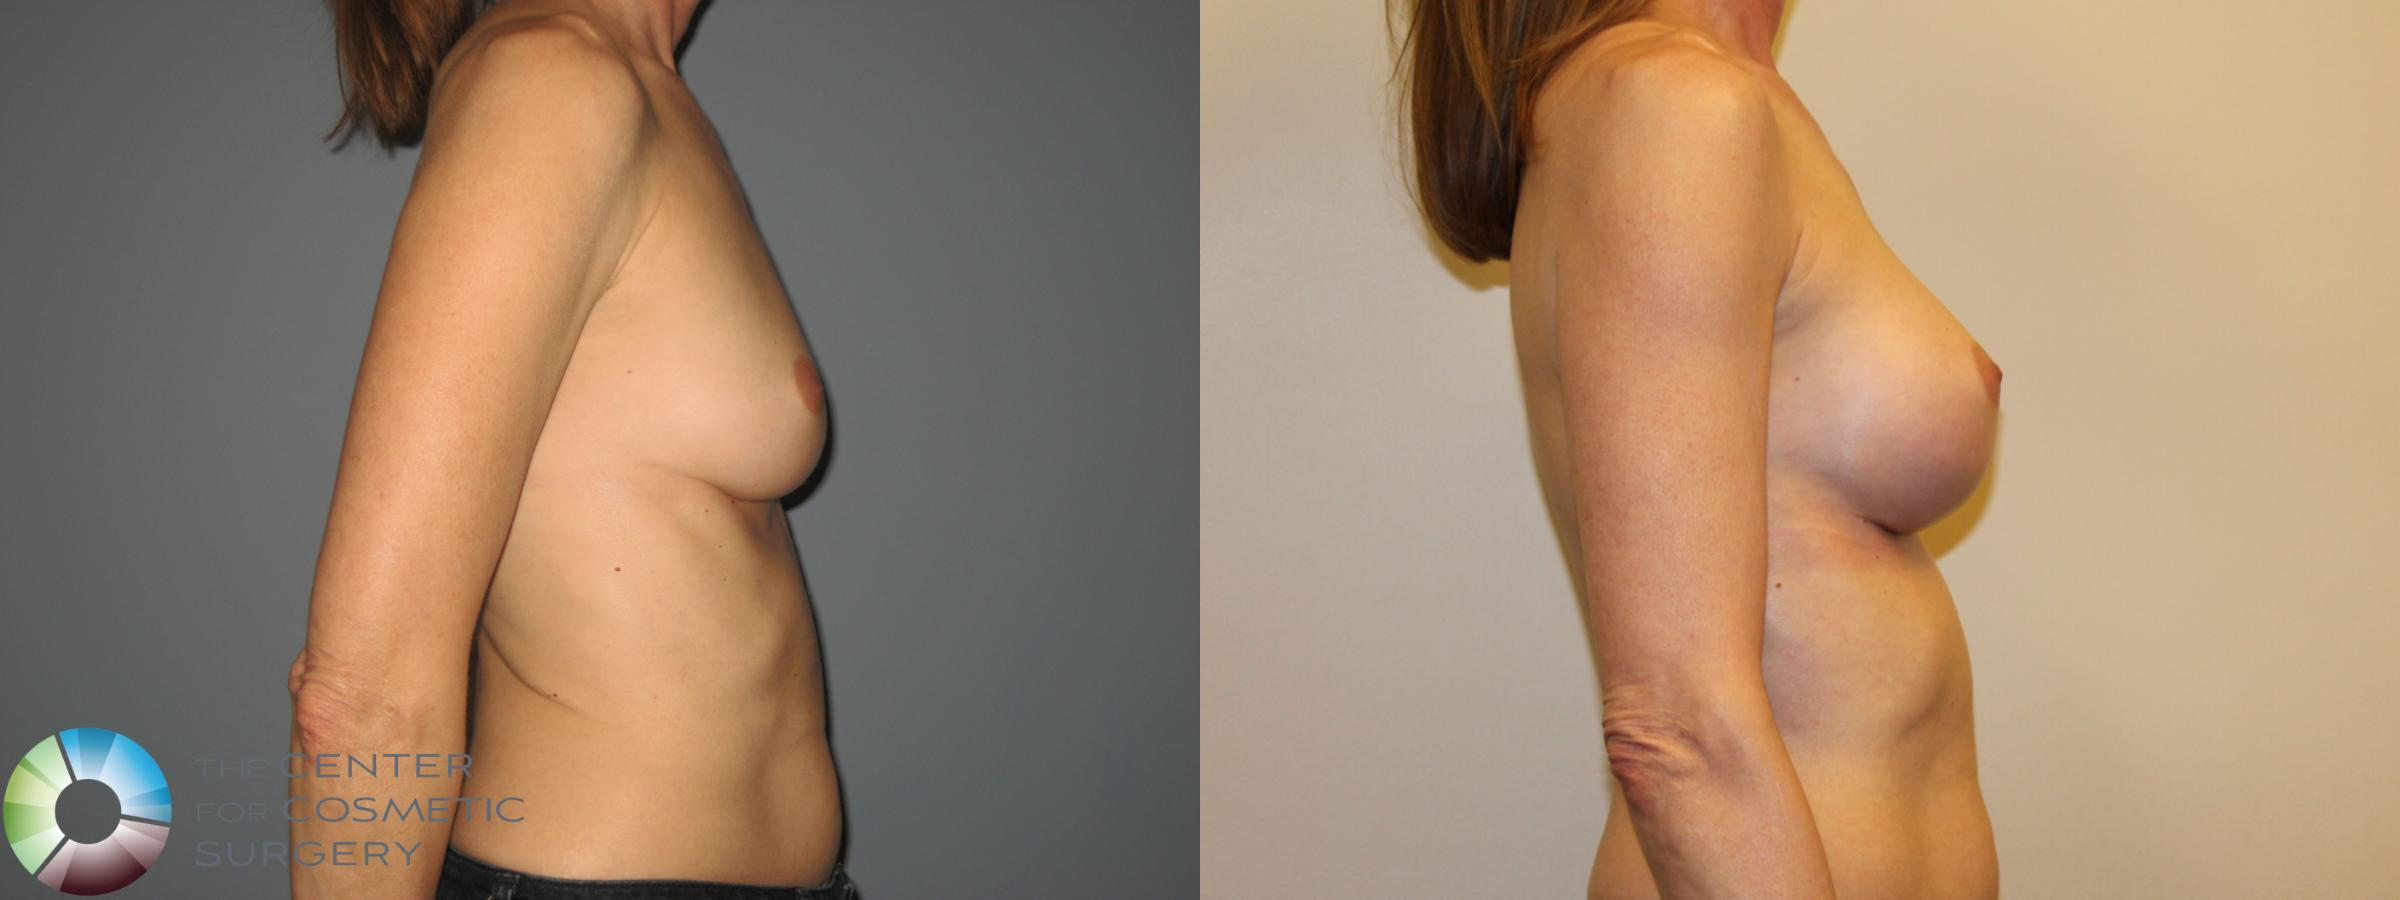 Breast Augmentation Case 718 Before & After View #4 | Golden, CO | The Center for Cosmetic Surgery